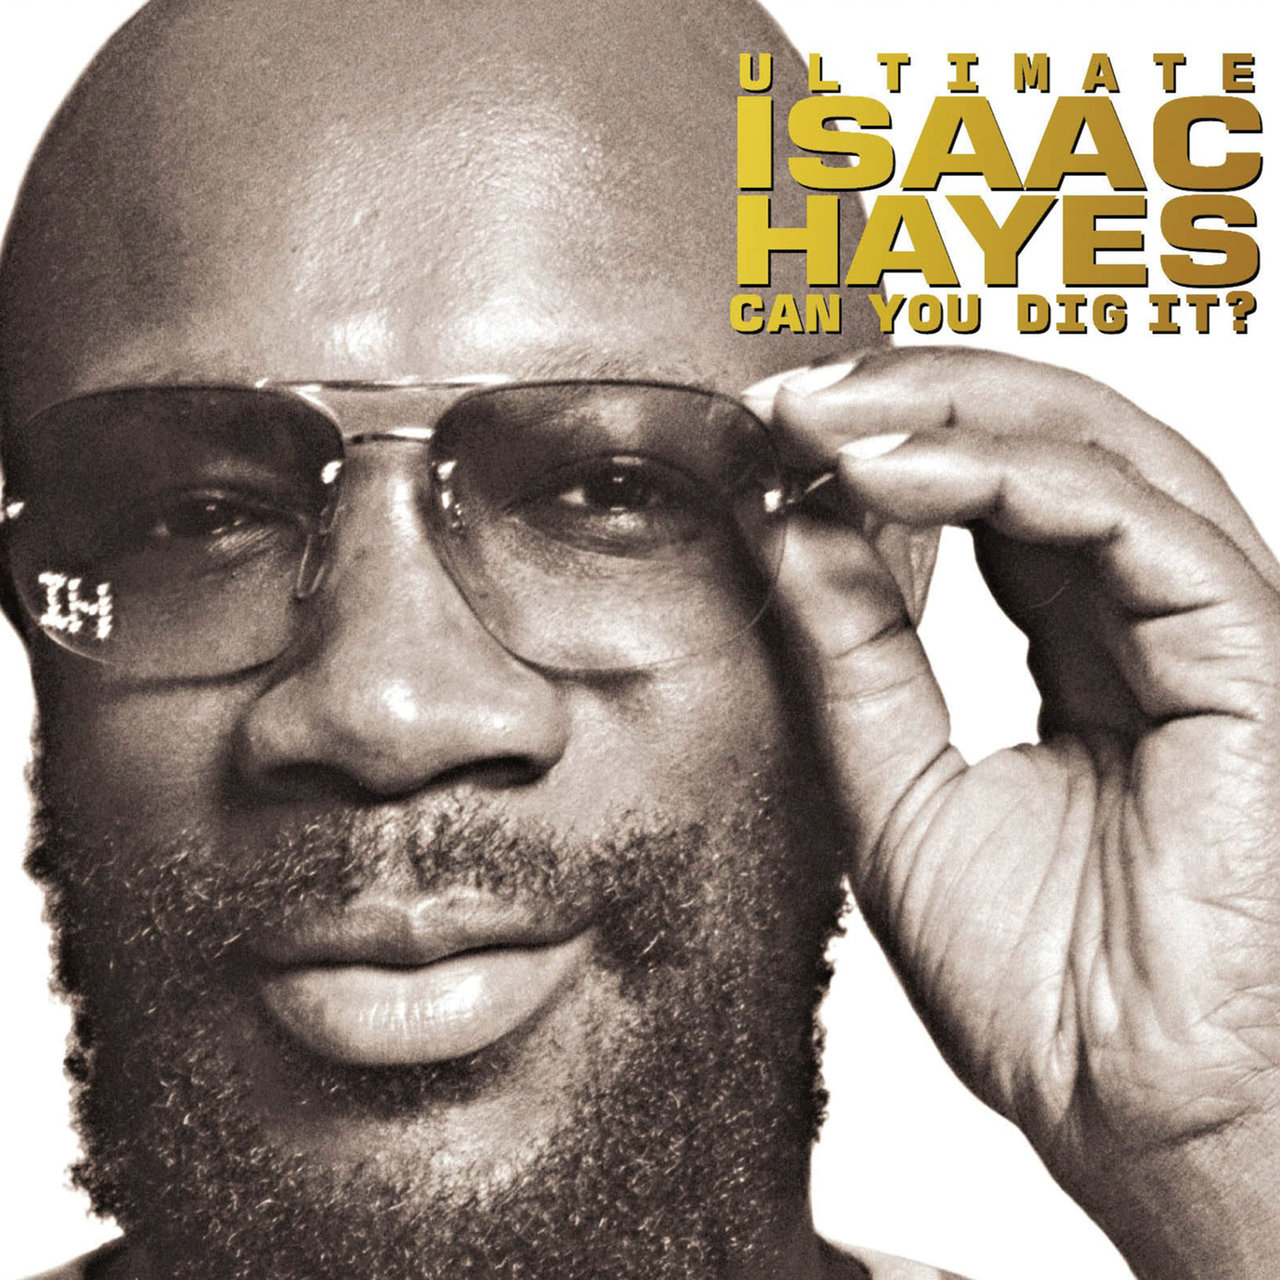 Isaac Hayes Movies And Tv Shows Good ultimate isaac hayes: can you dig it? / isaac hayes tidal